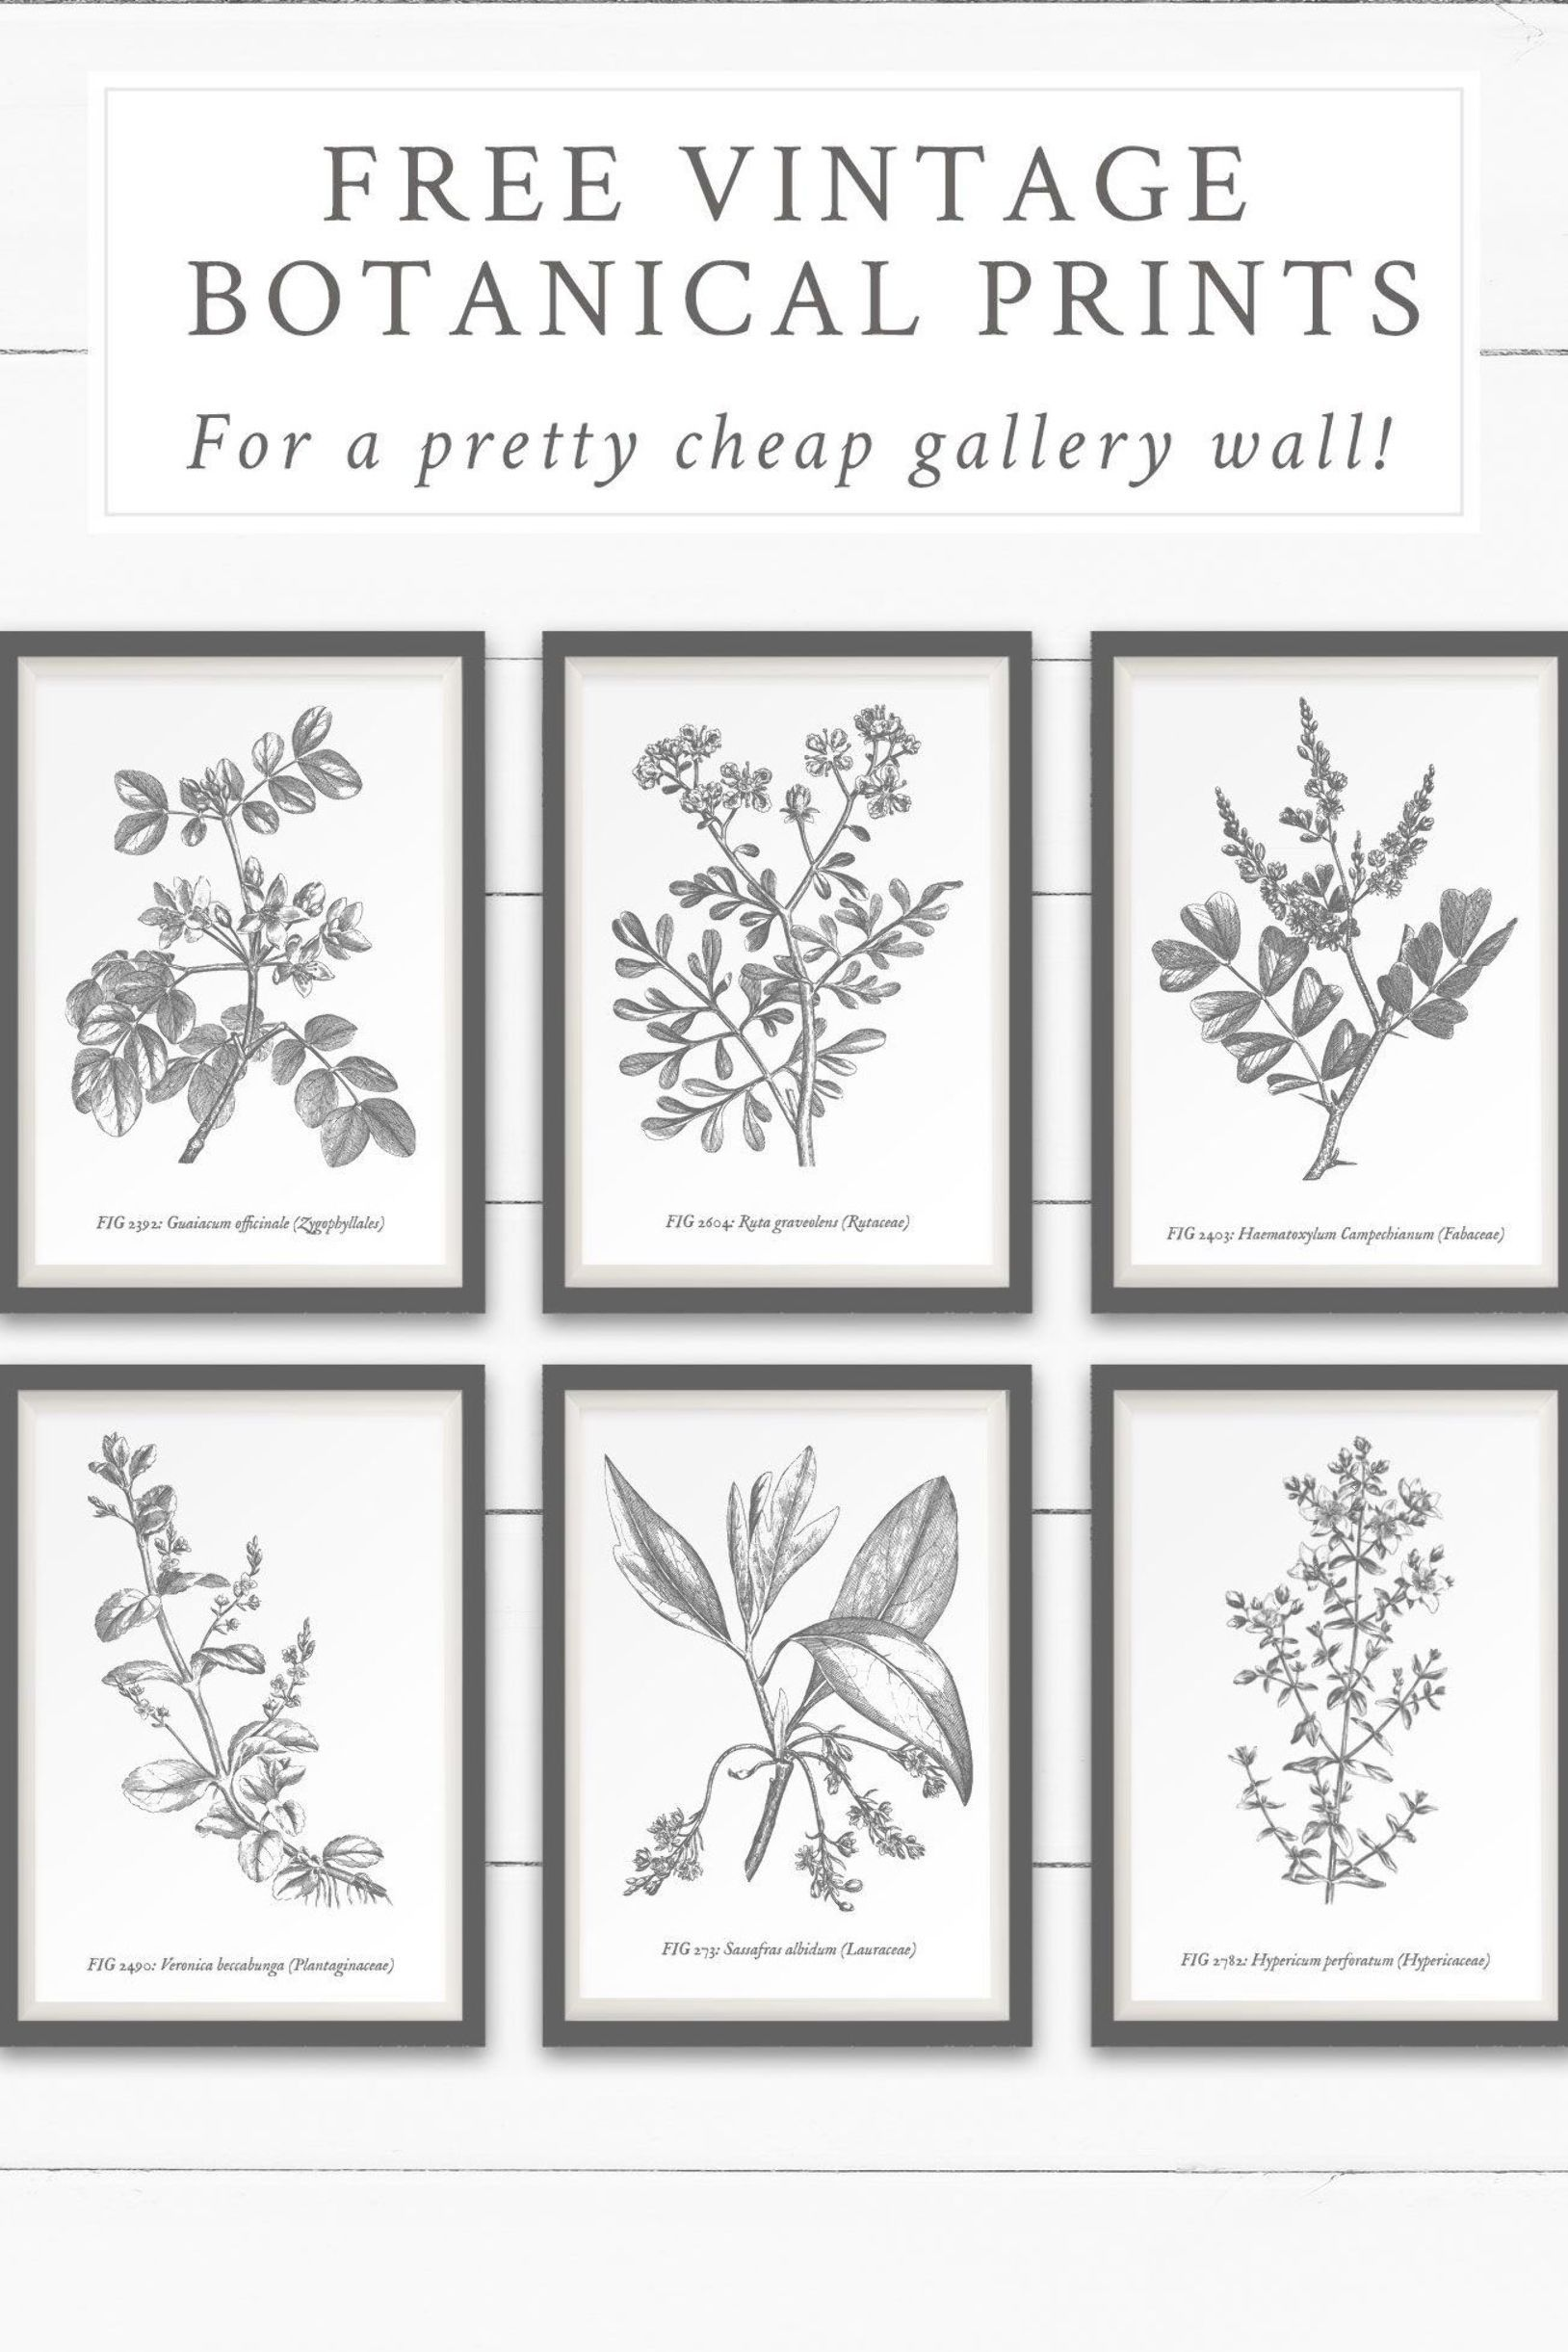 Download This Free Printable Vintage Botanical Wall Art To Create A Beautiful And Cheap Gallery Wall In Free Printable Wall Art Gallery Wall Botanical Wall Art